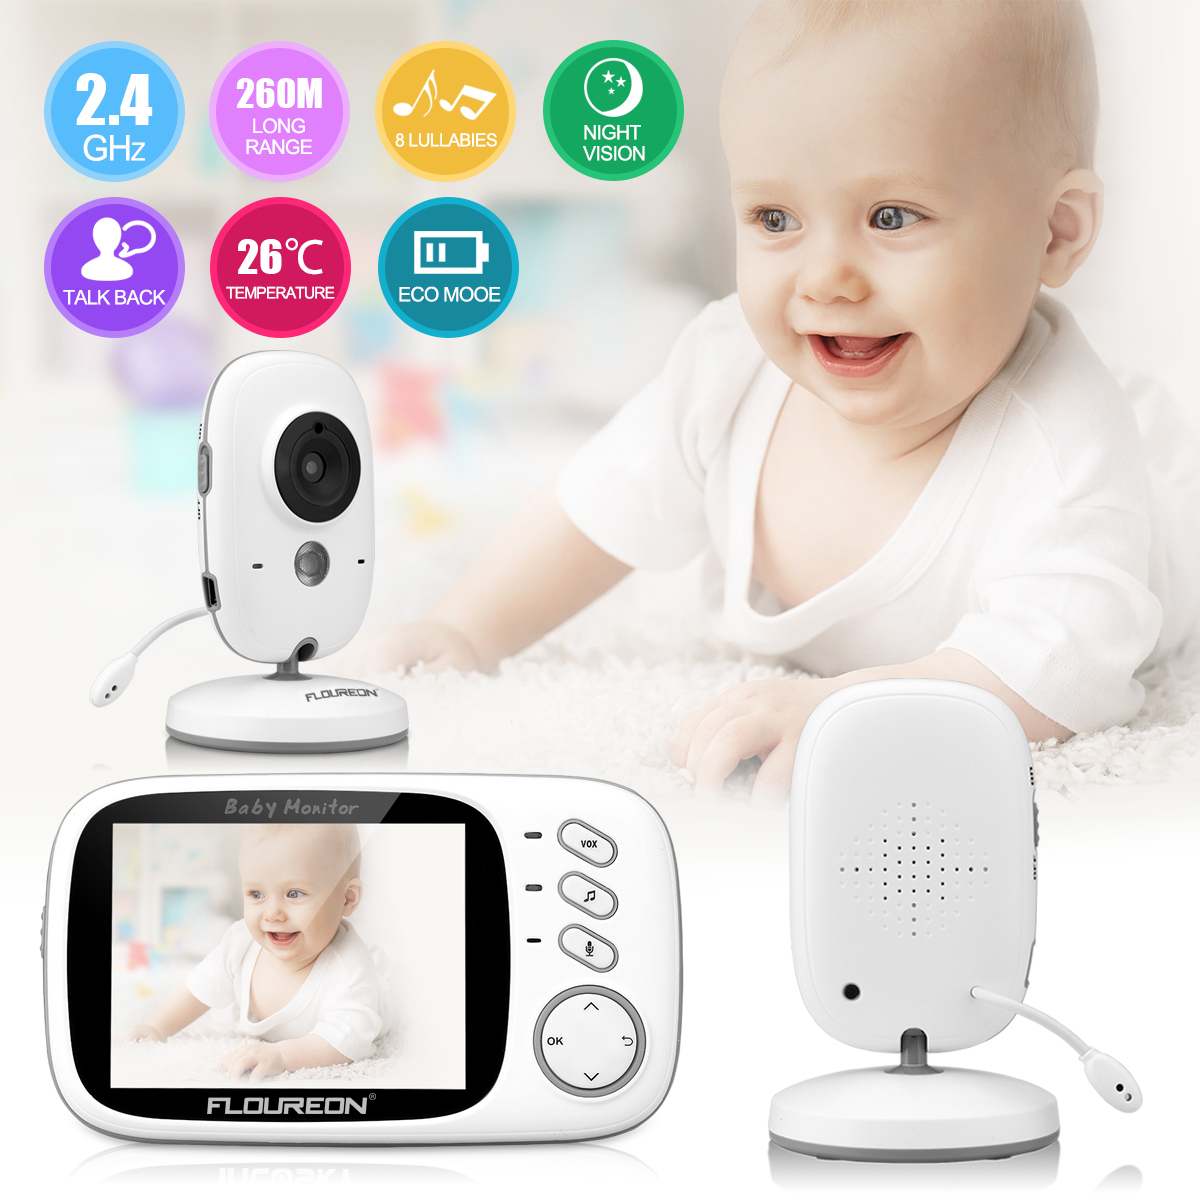 "3.2"" Wireless Video Baby Monitor with LCD Display Digital Camera Infrared Night Vision Two Way Talk Back Temperature Sensor Lullabies Including Corner Shelf"